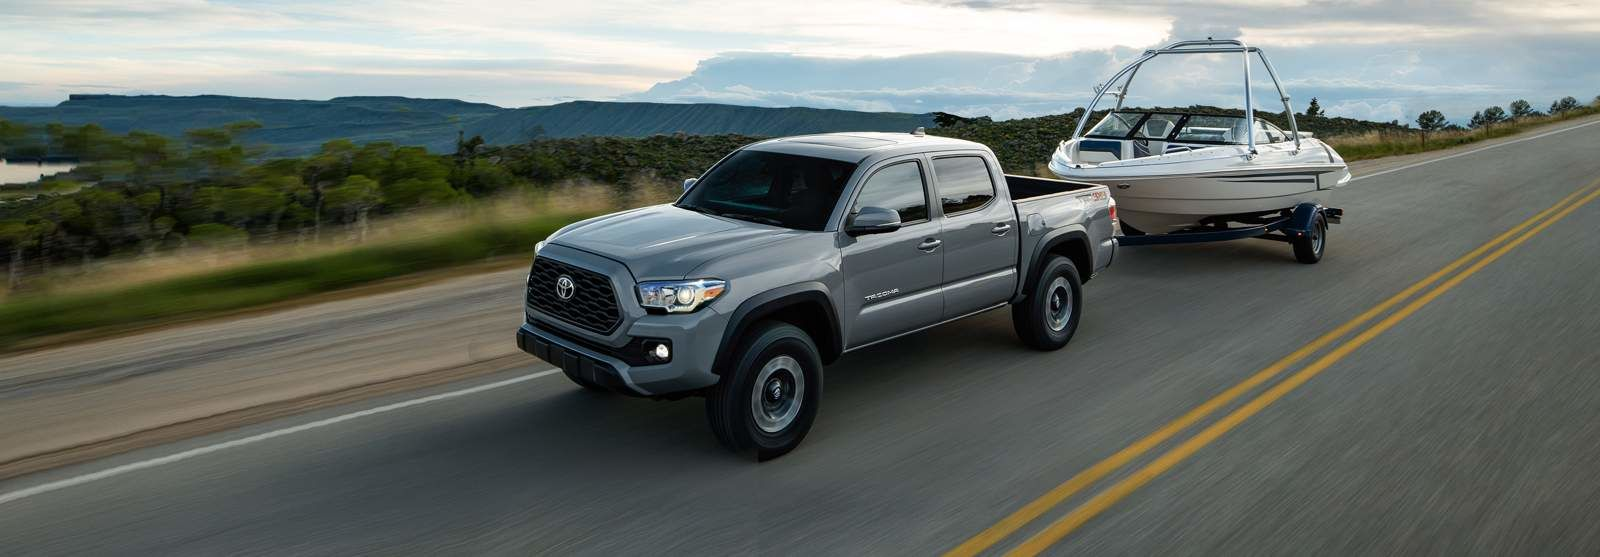 toyota-overview-hero-2021-tacoma-trd-pro-cement-gray-m